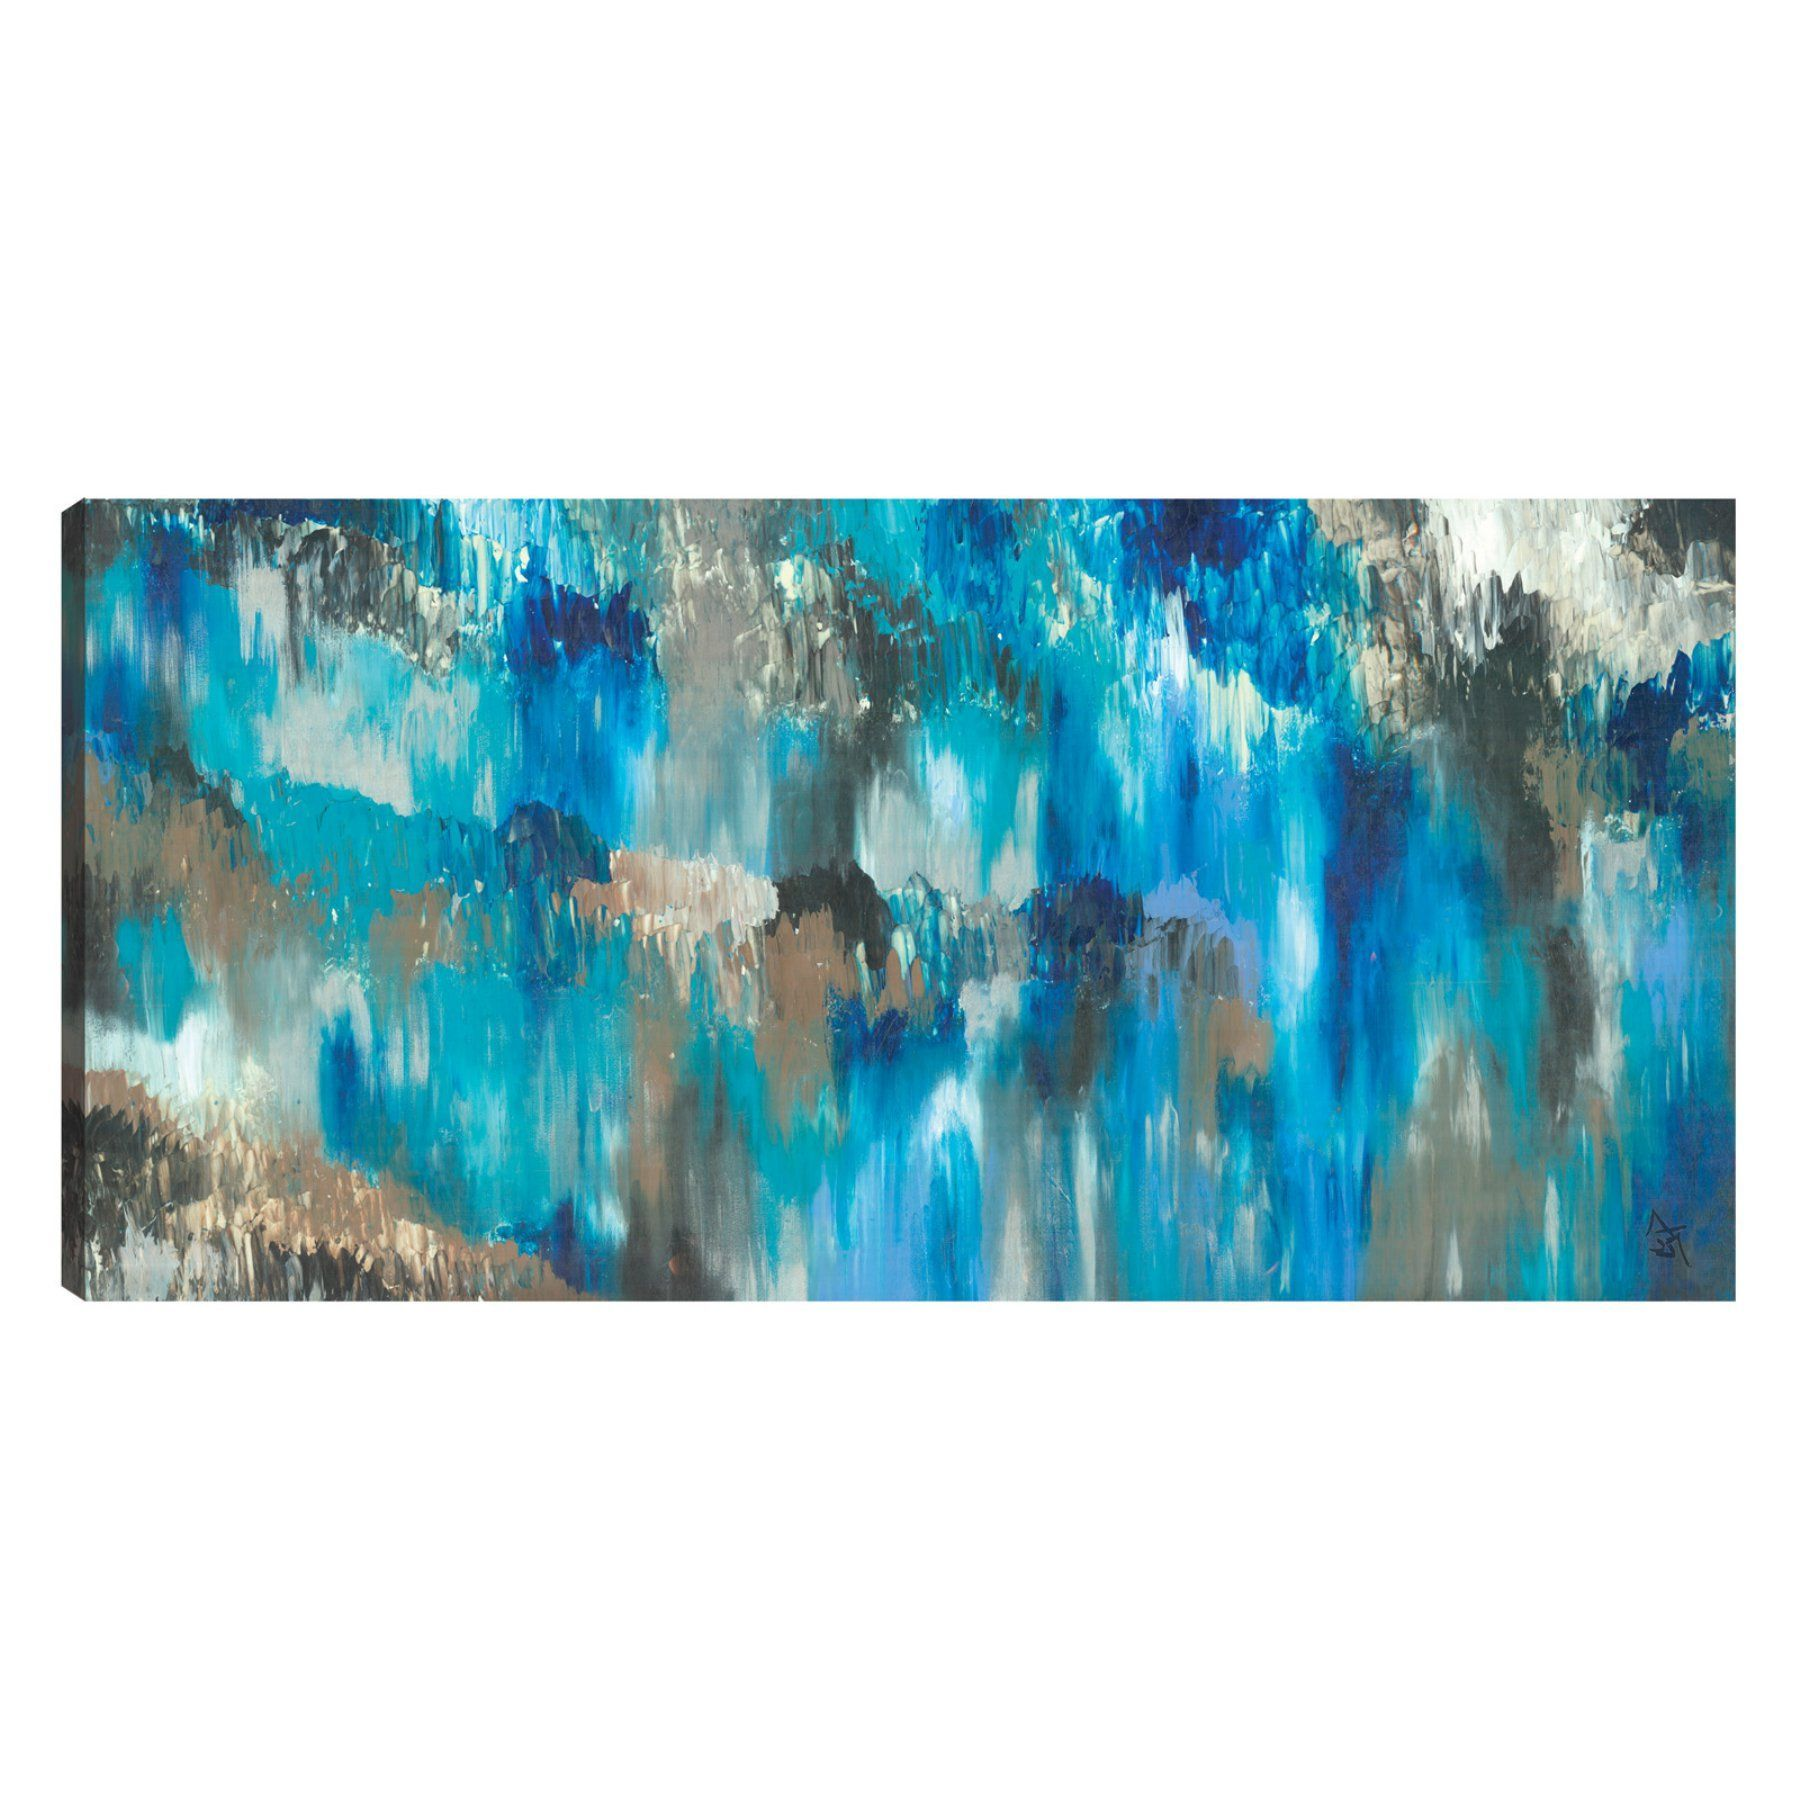 Artmaison canada exotic blue wall art snjonl blue walls and